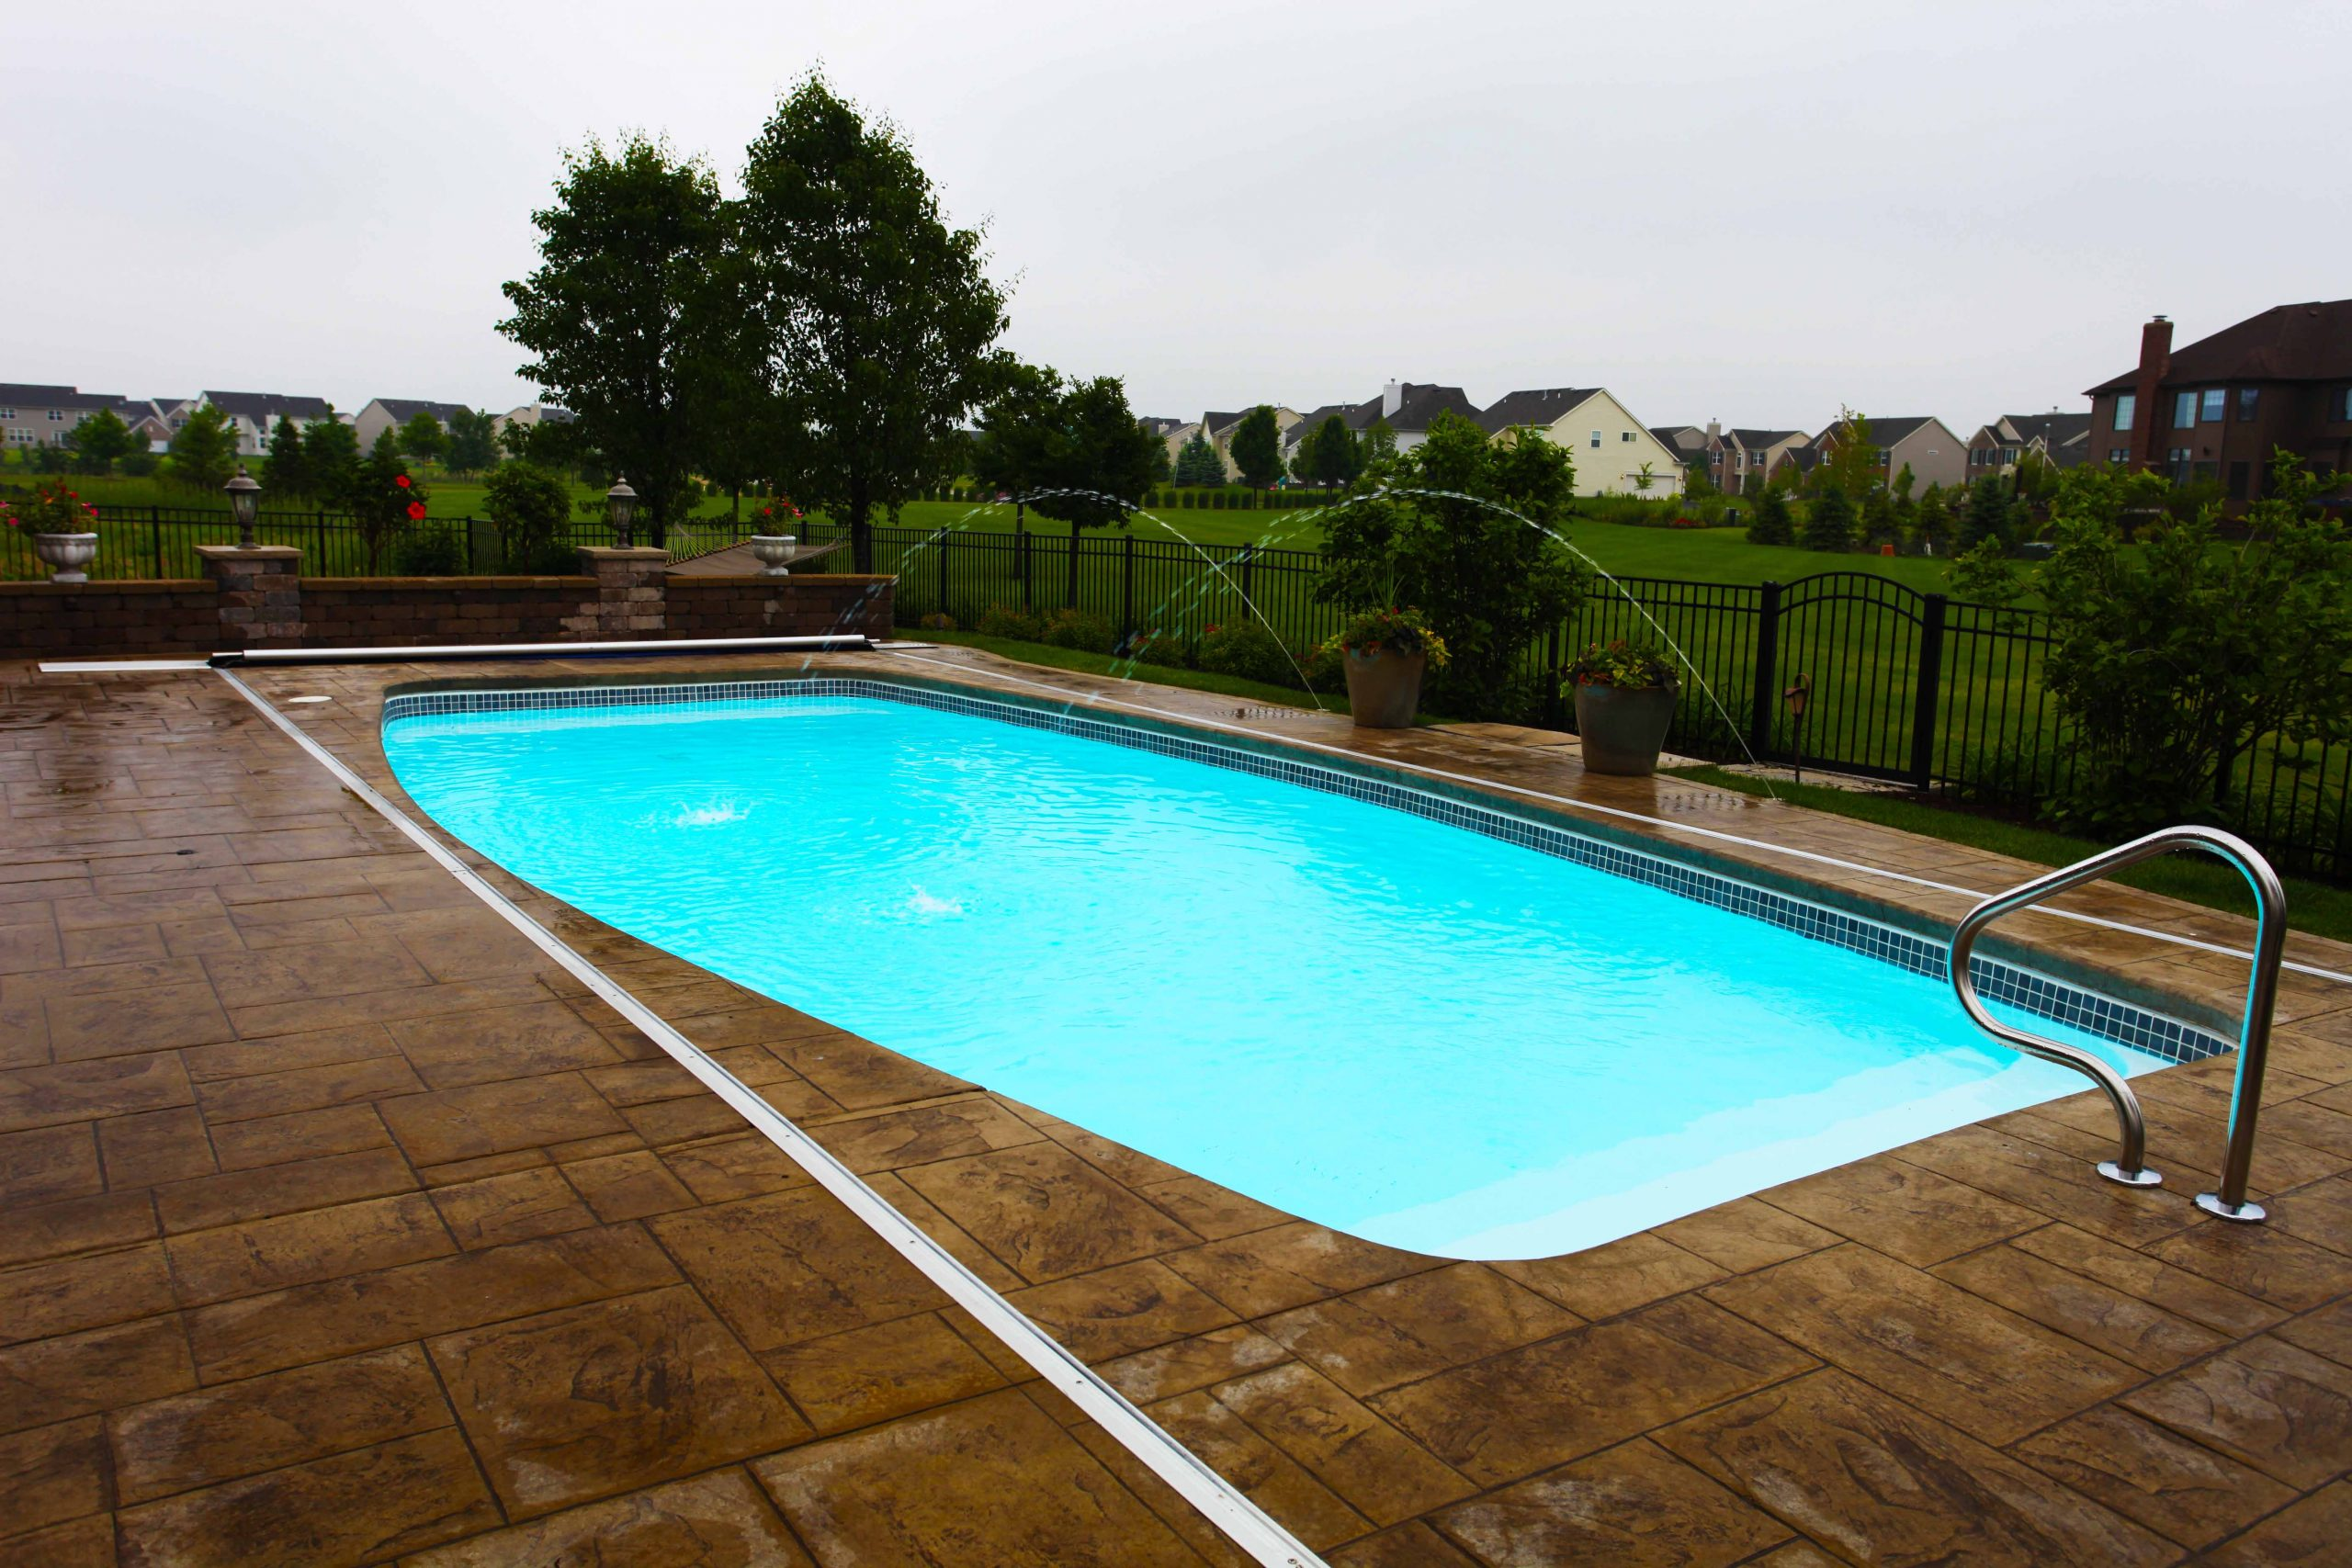 The Majestic is a modern pool design that San Juan Pools created many years ago.